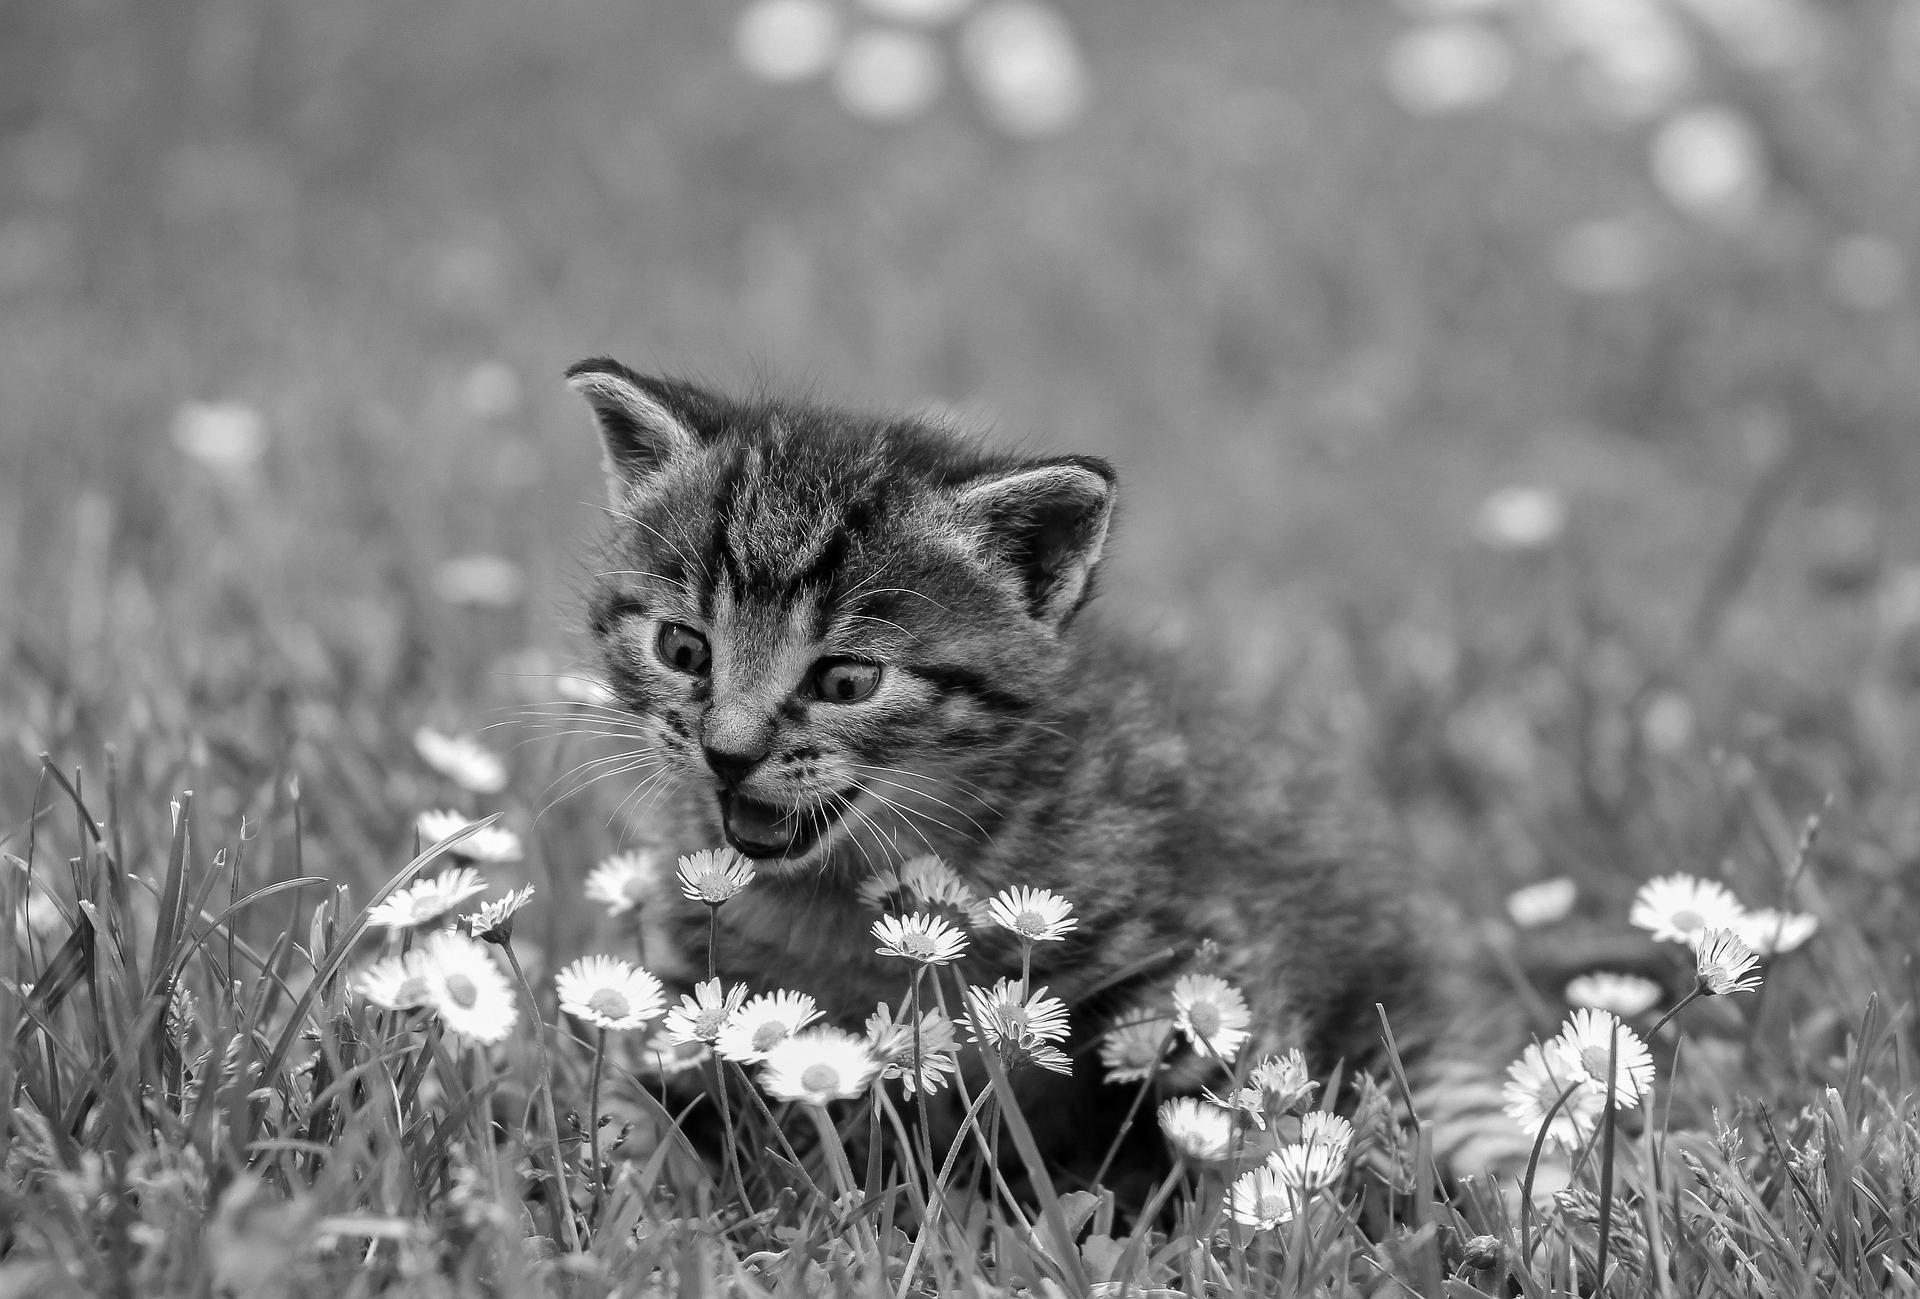 A better grayscale version of the kitty.